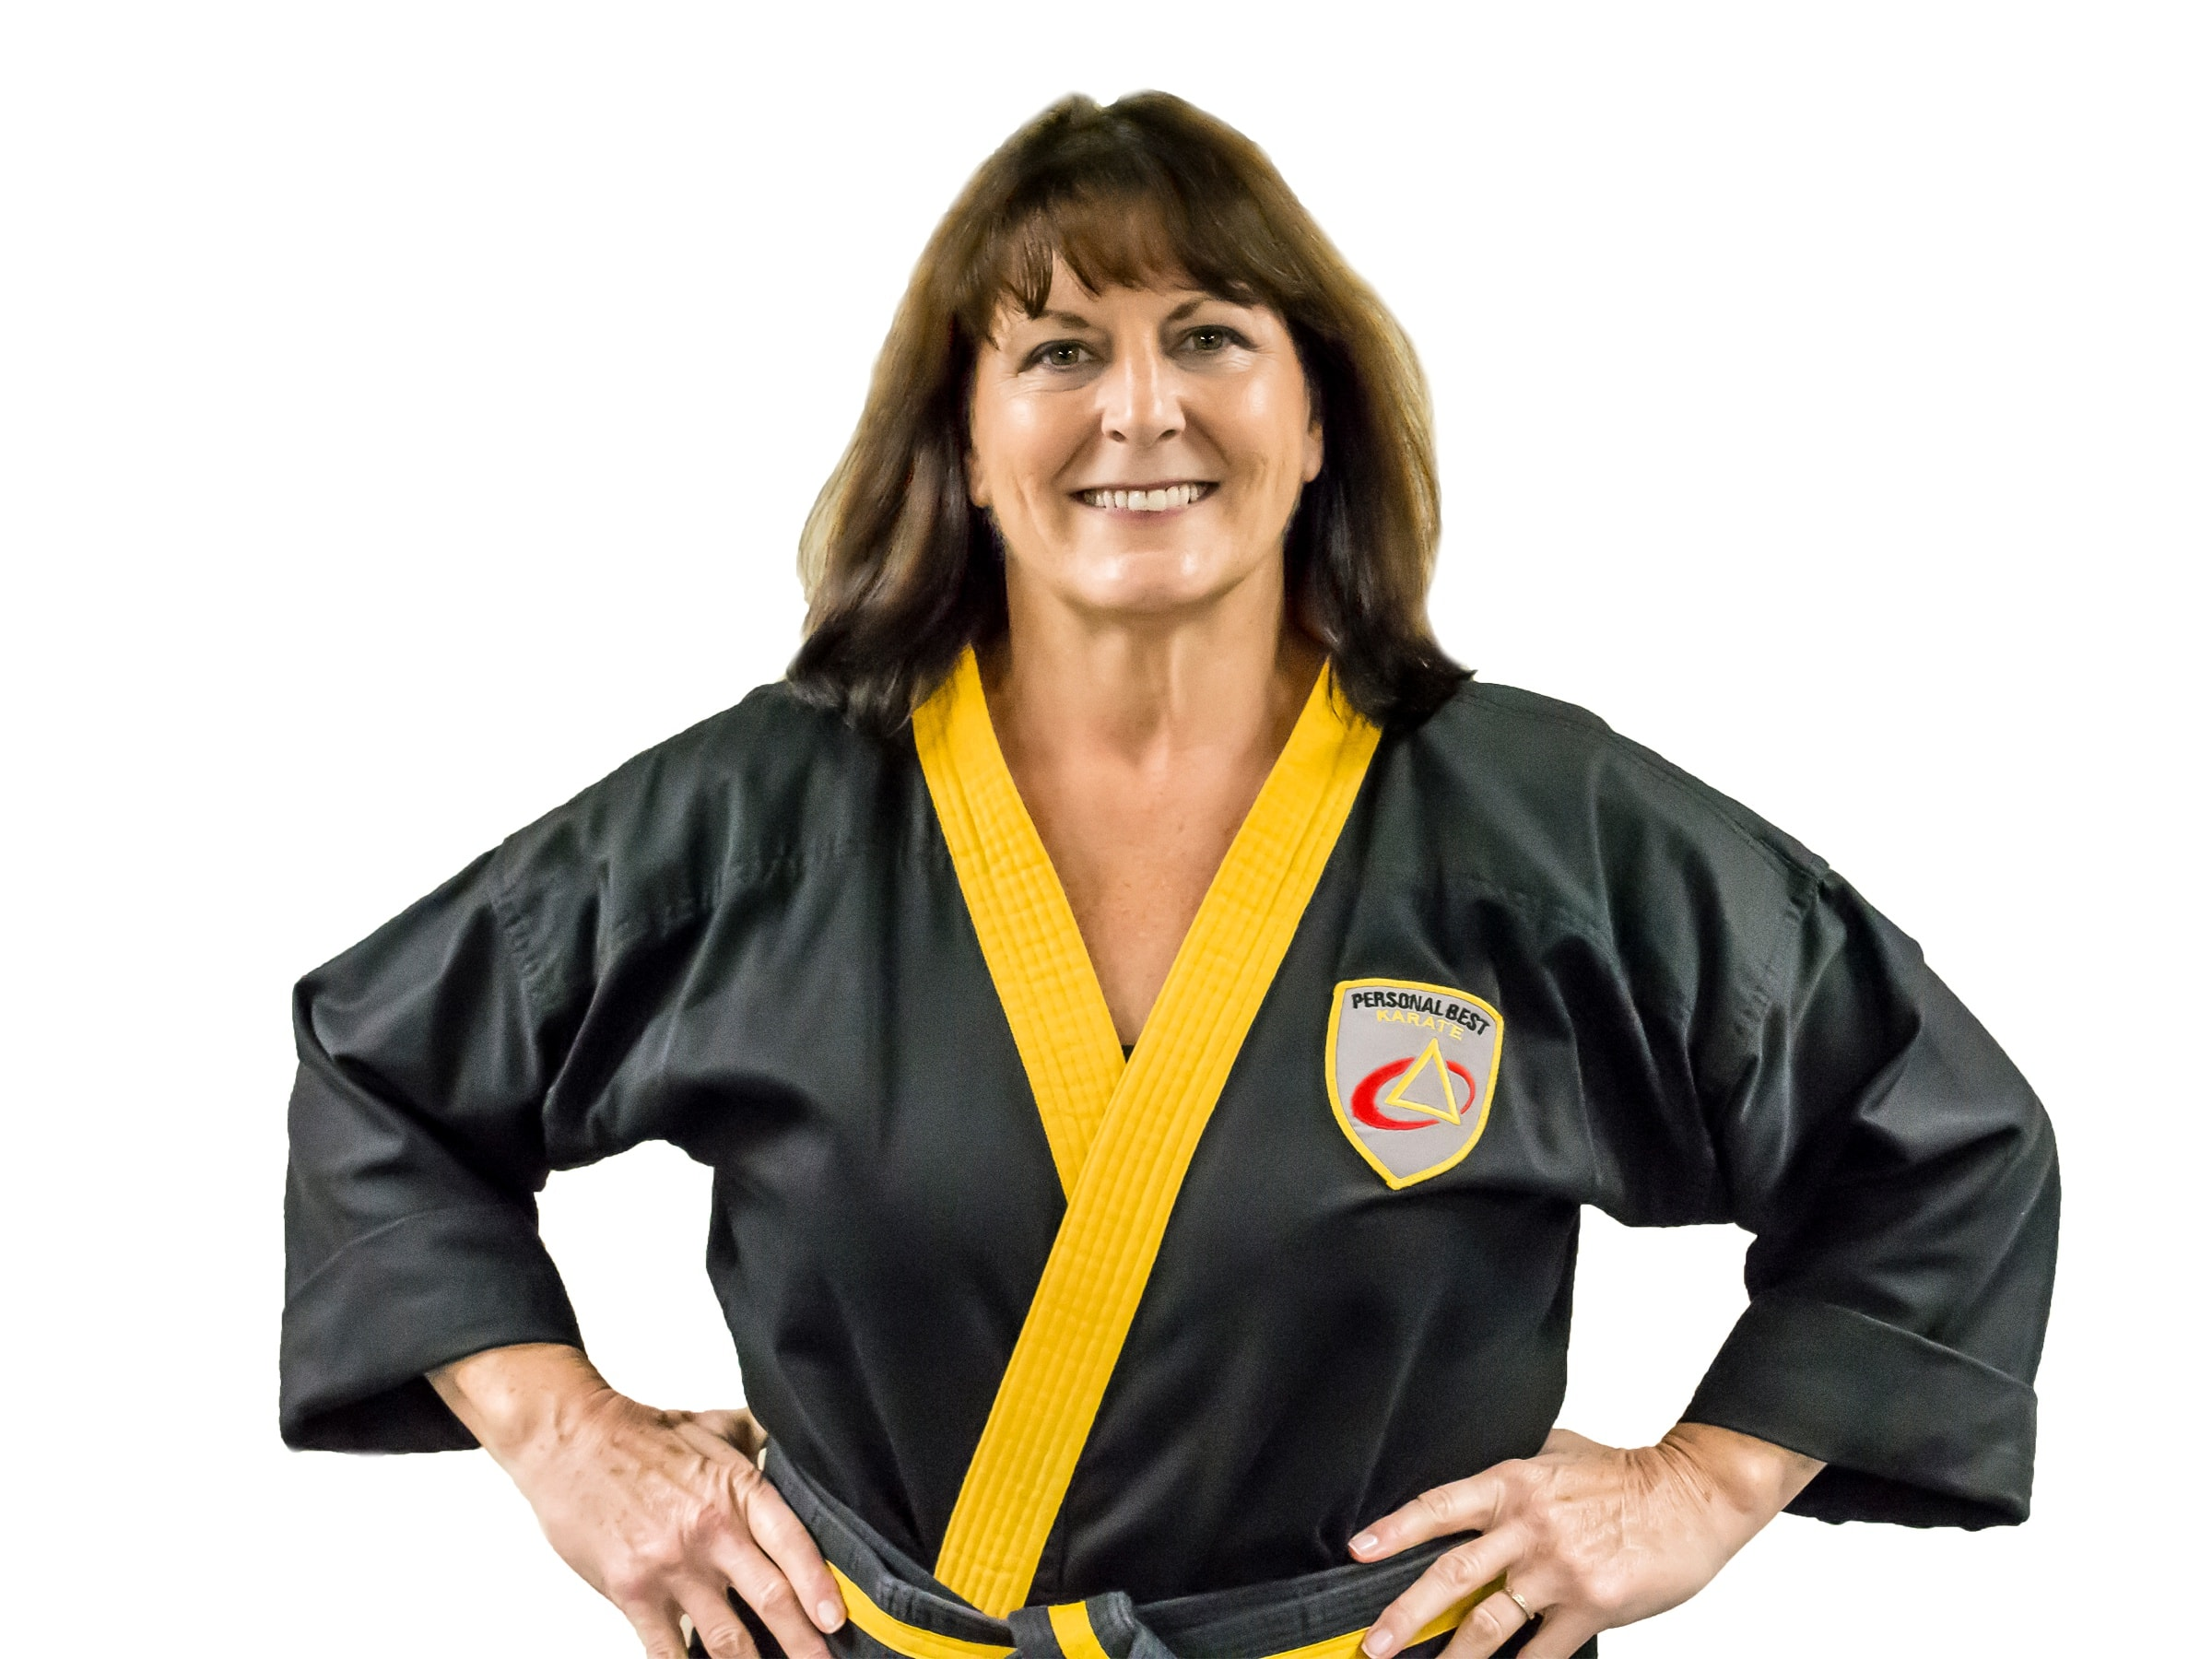 Eileen Rappold in Norton - Personal Best Karate